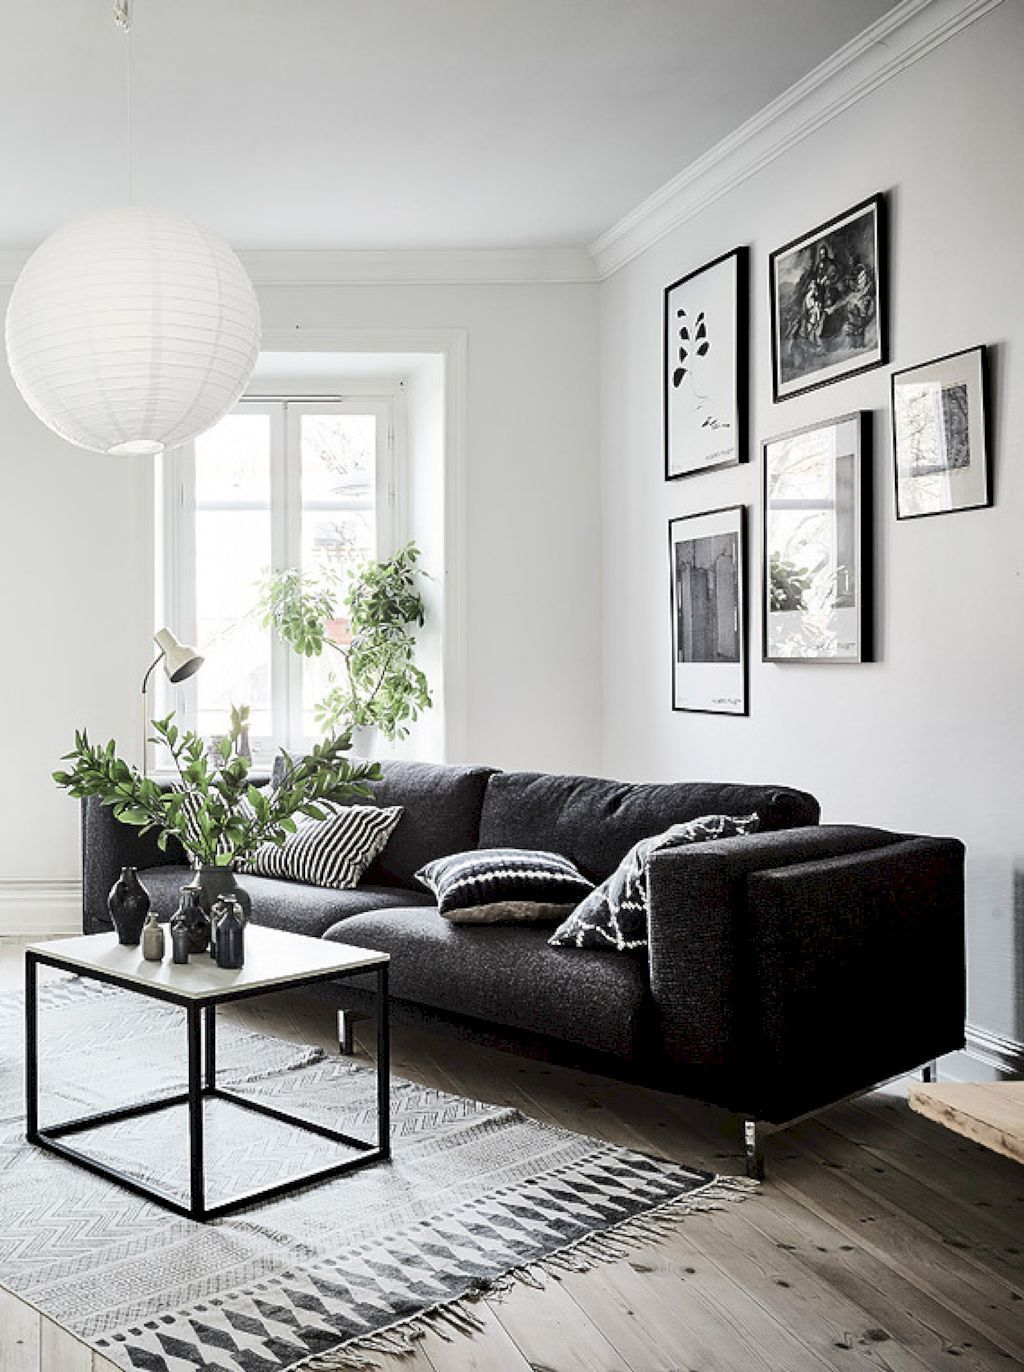 34 Wonderful Minimalist Living Room Design Ideas White Living Room Decor Black And White Living Room Decor Gray Living Room Design